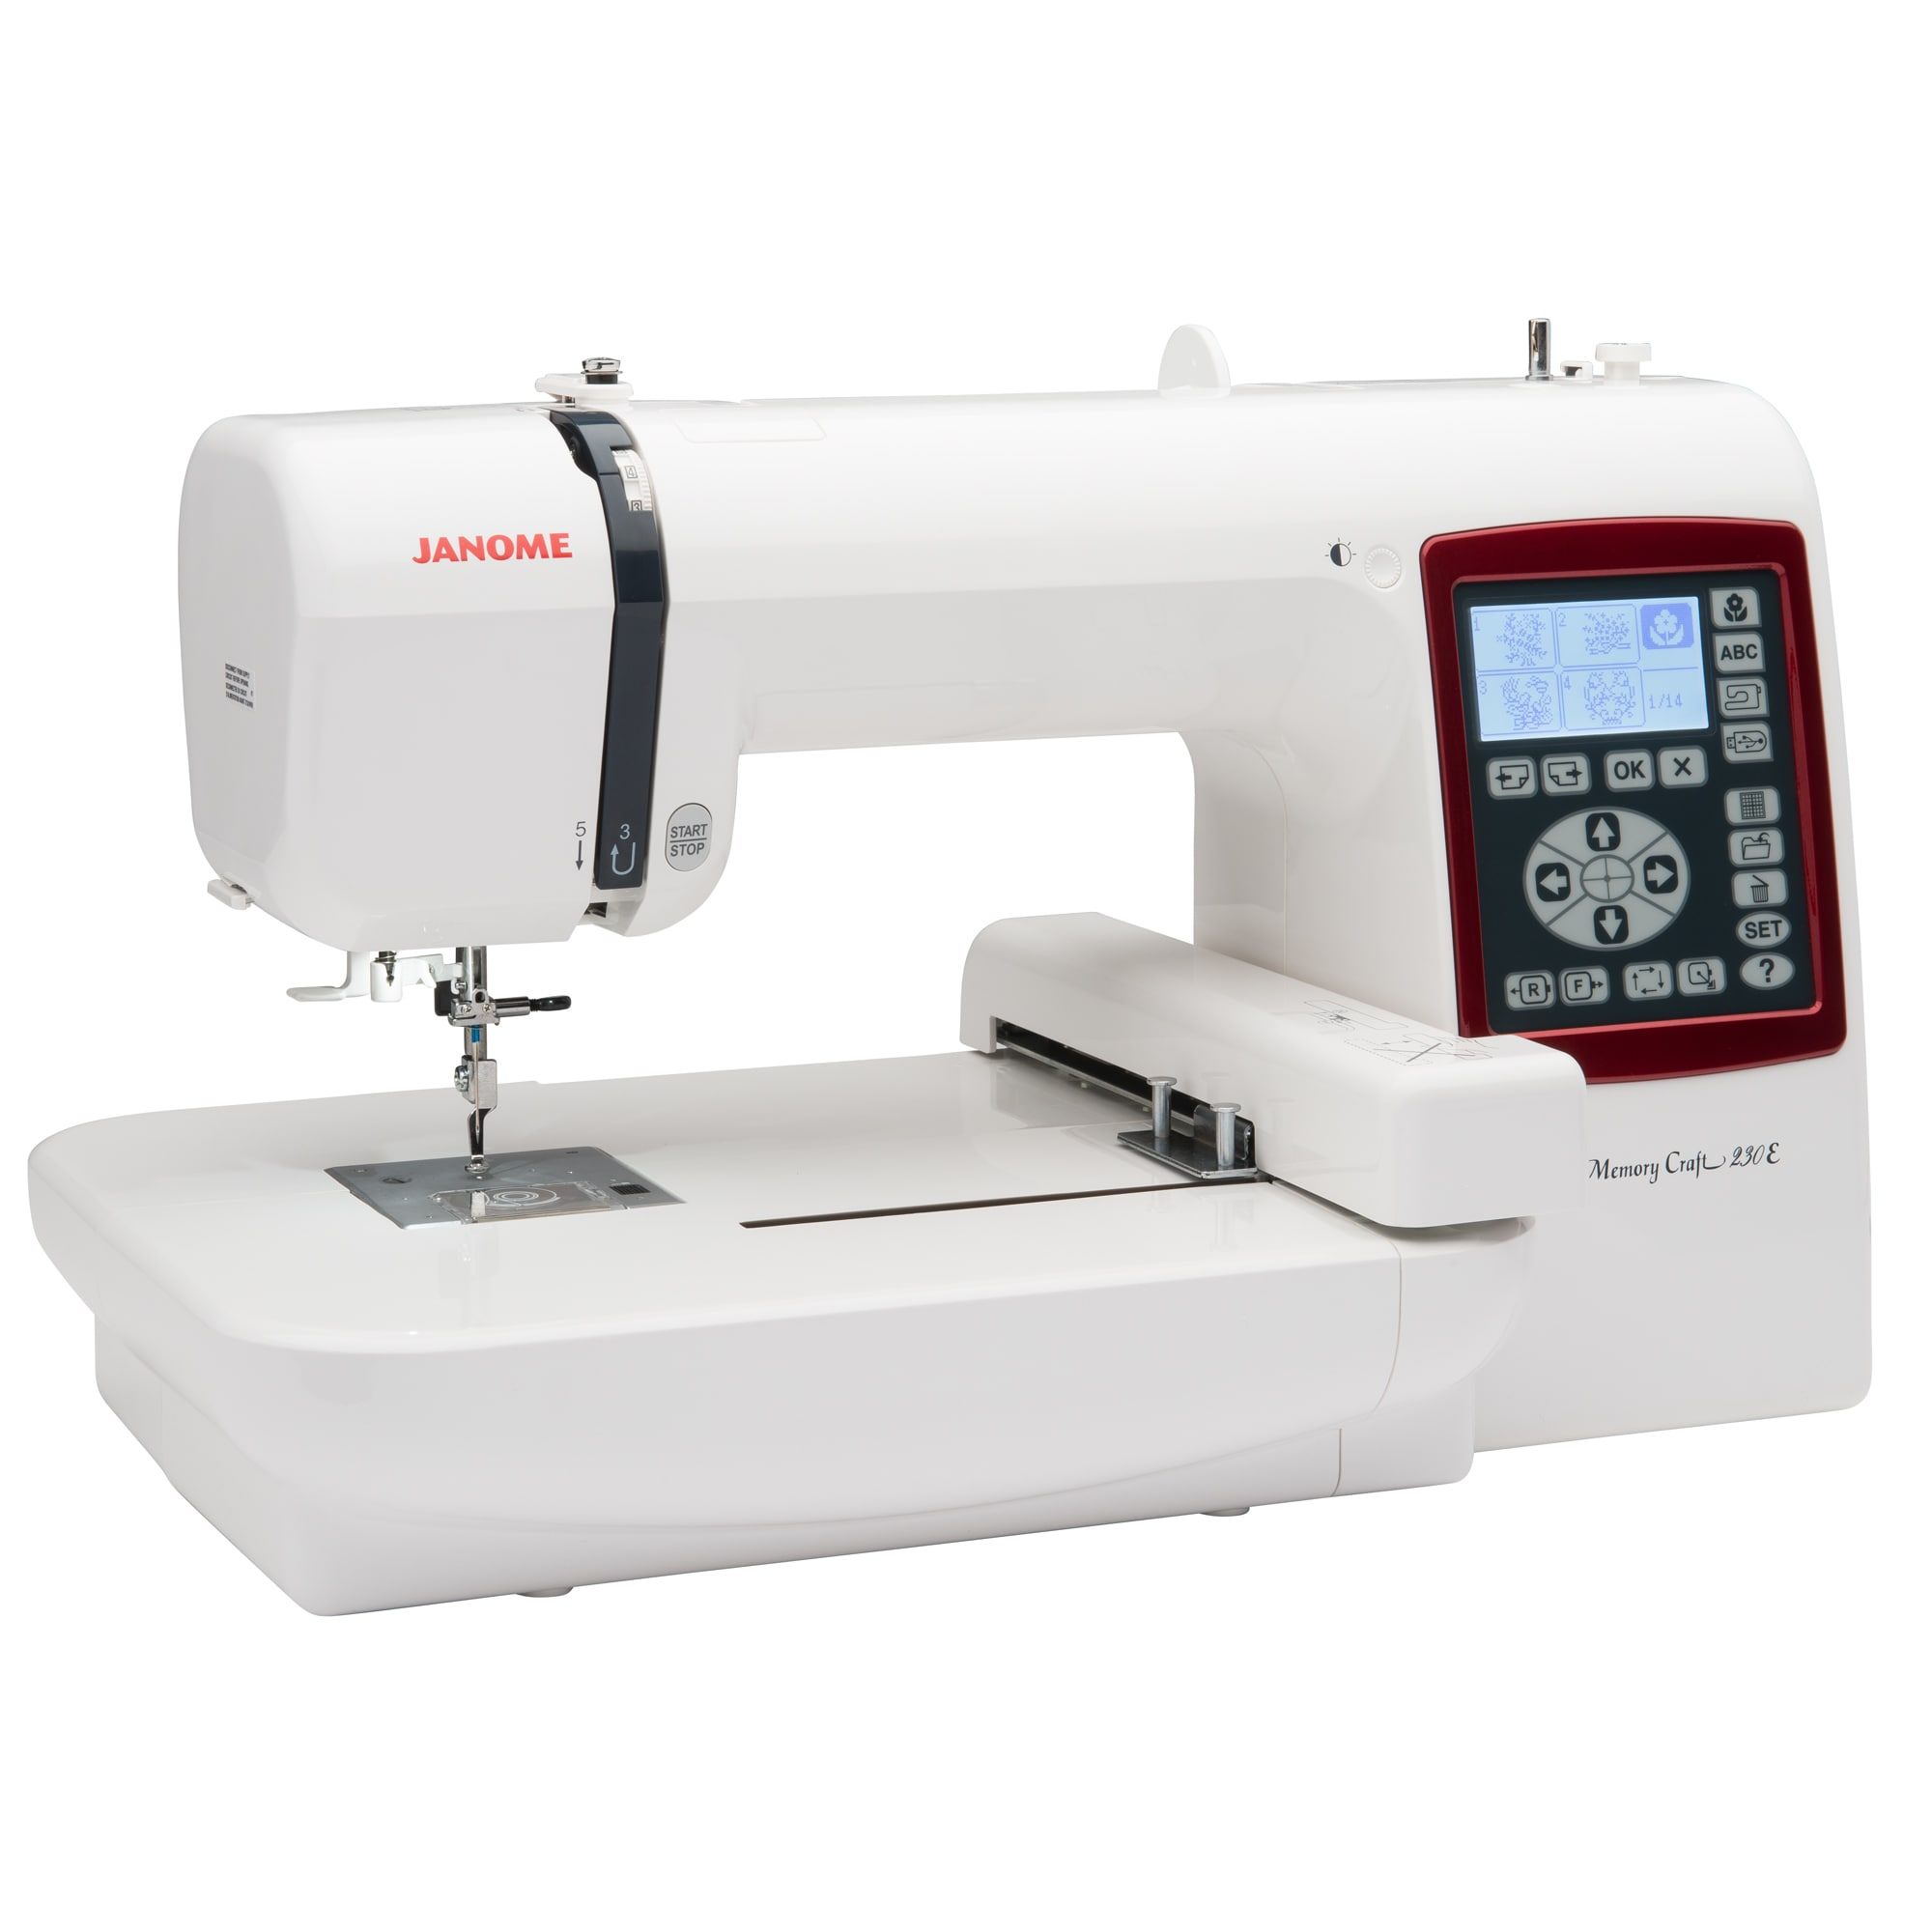 quilting quilt sewing janome machine machines embroidery computerised